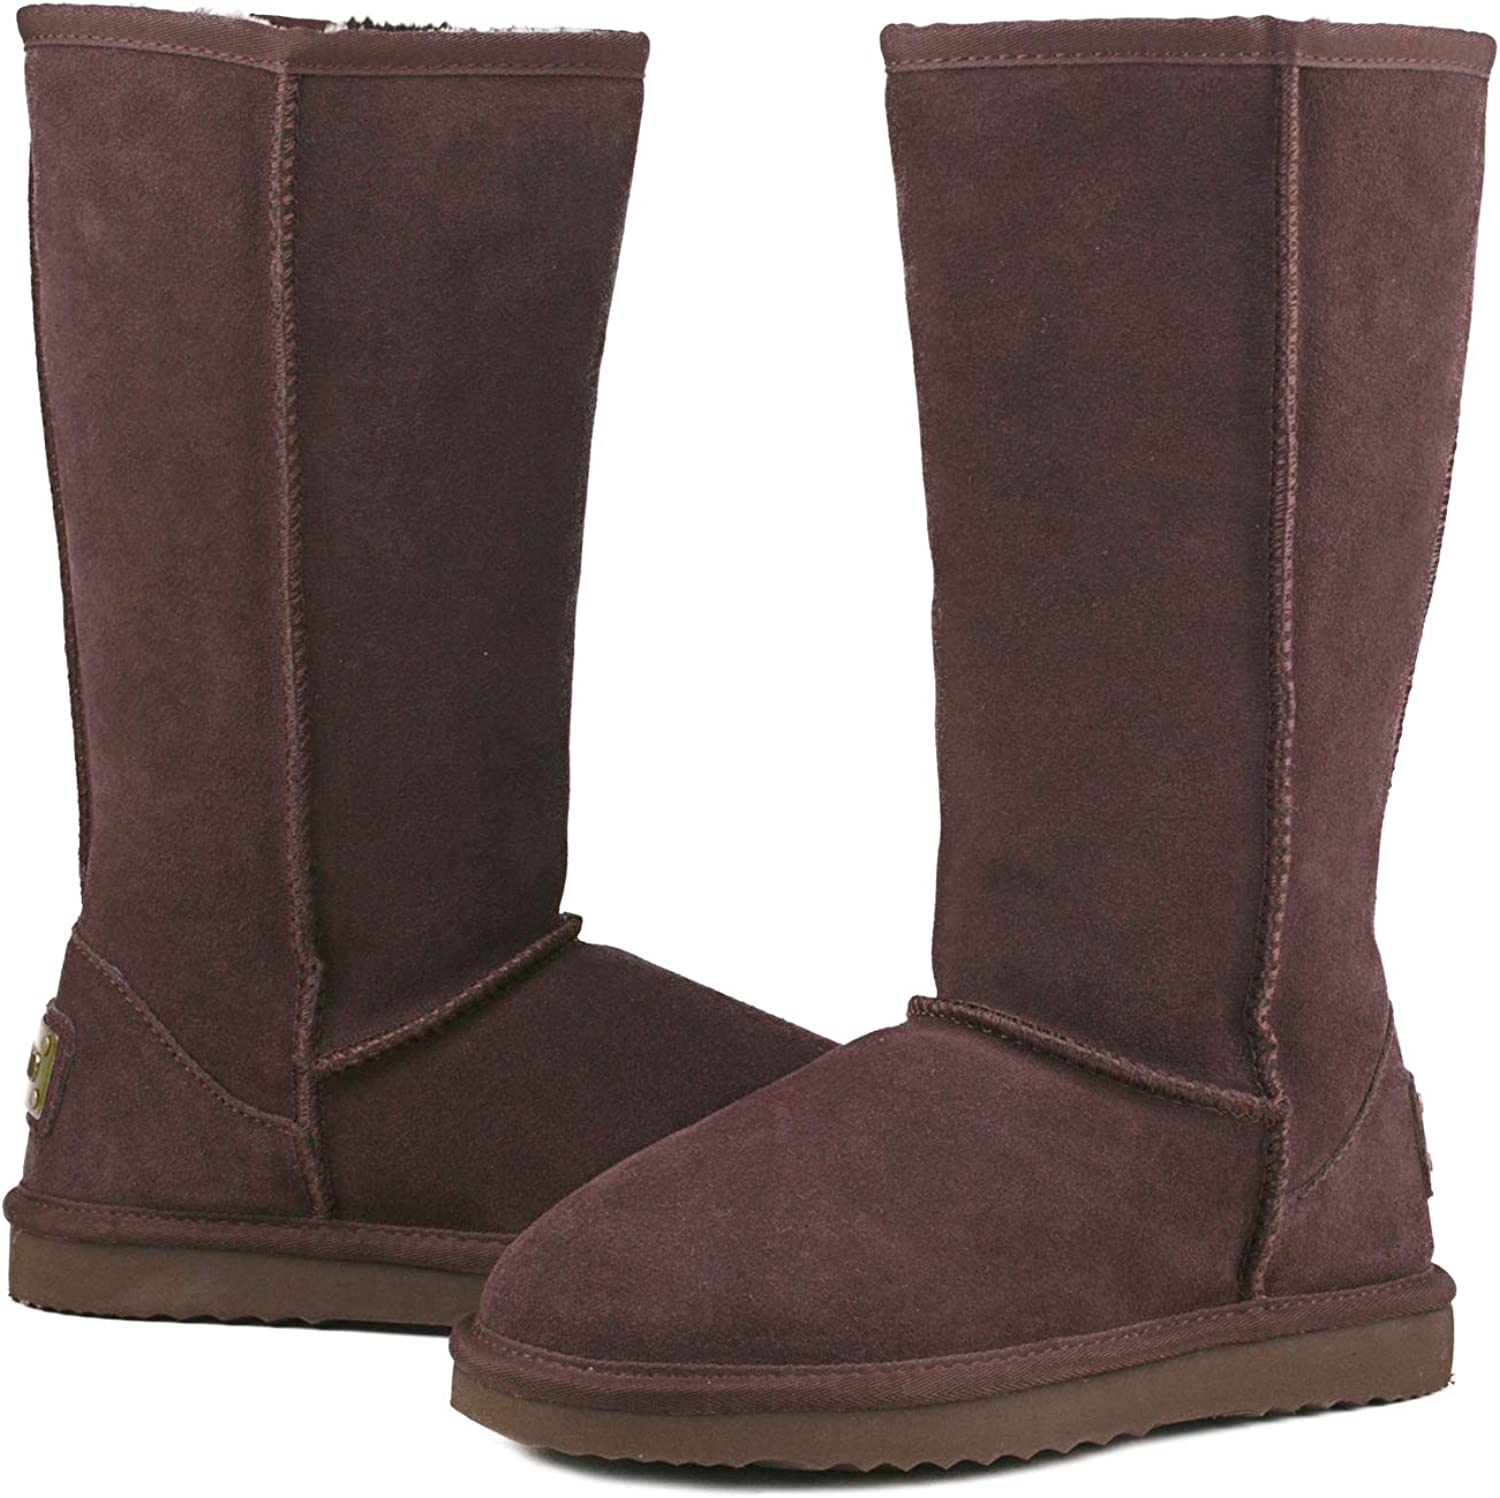 Ausland Womens Classic Leather Snow Boots Tall Winter Shoes A5815